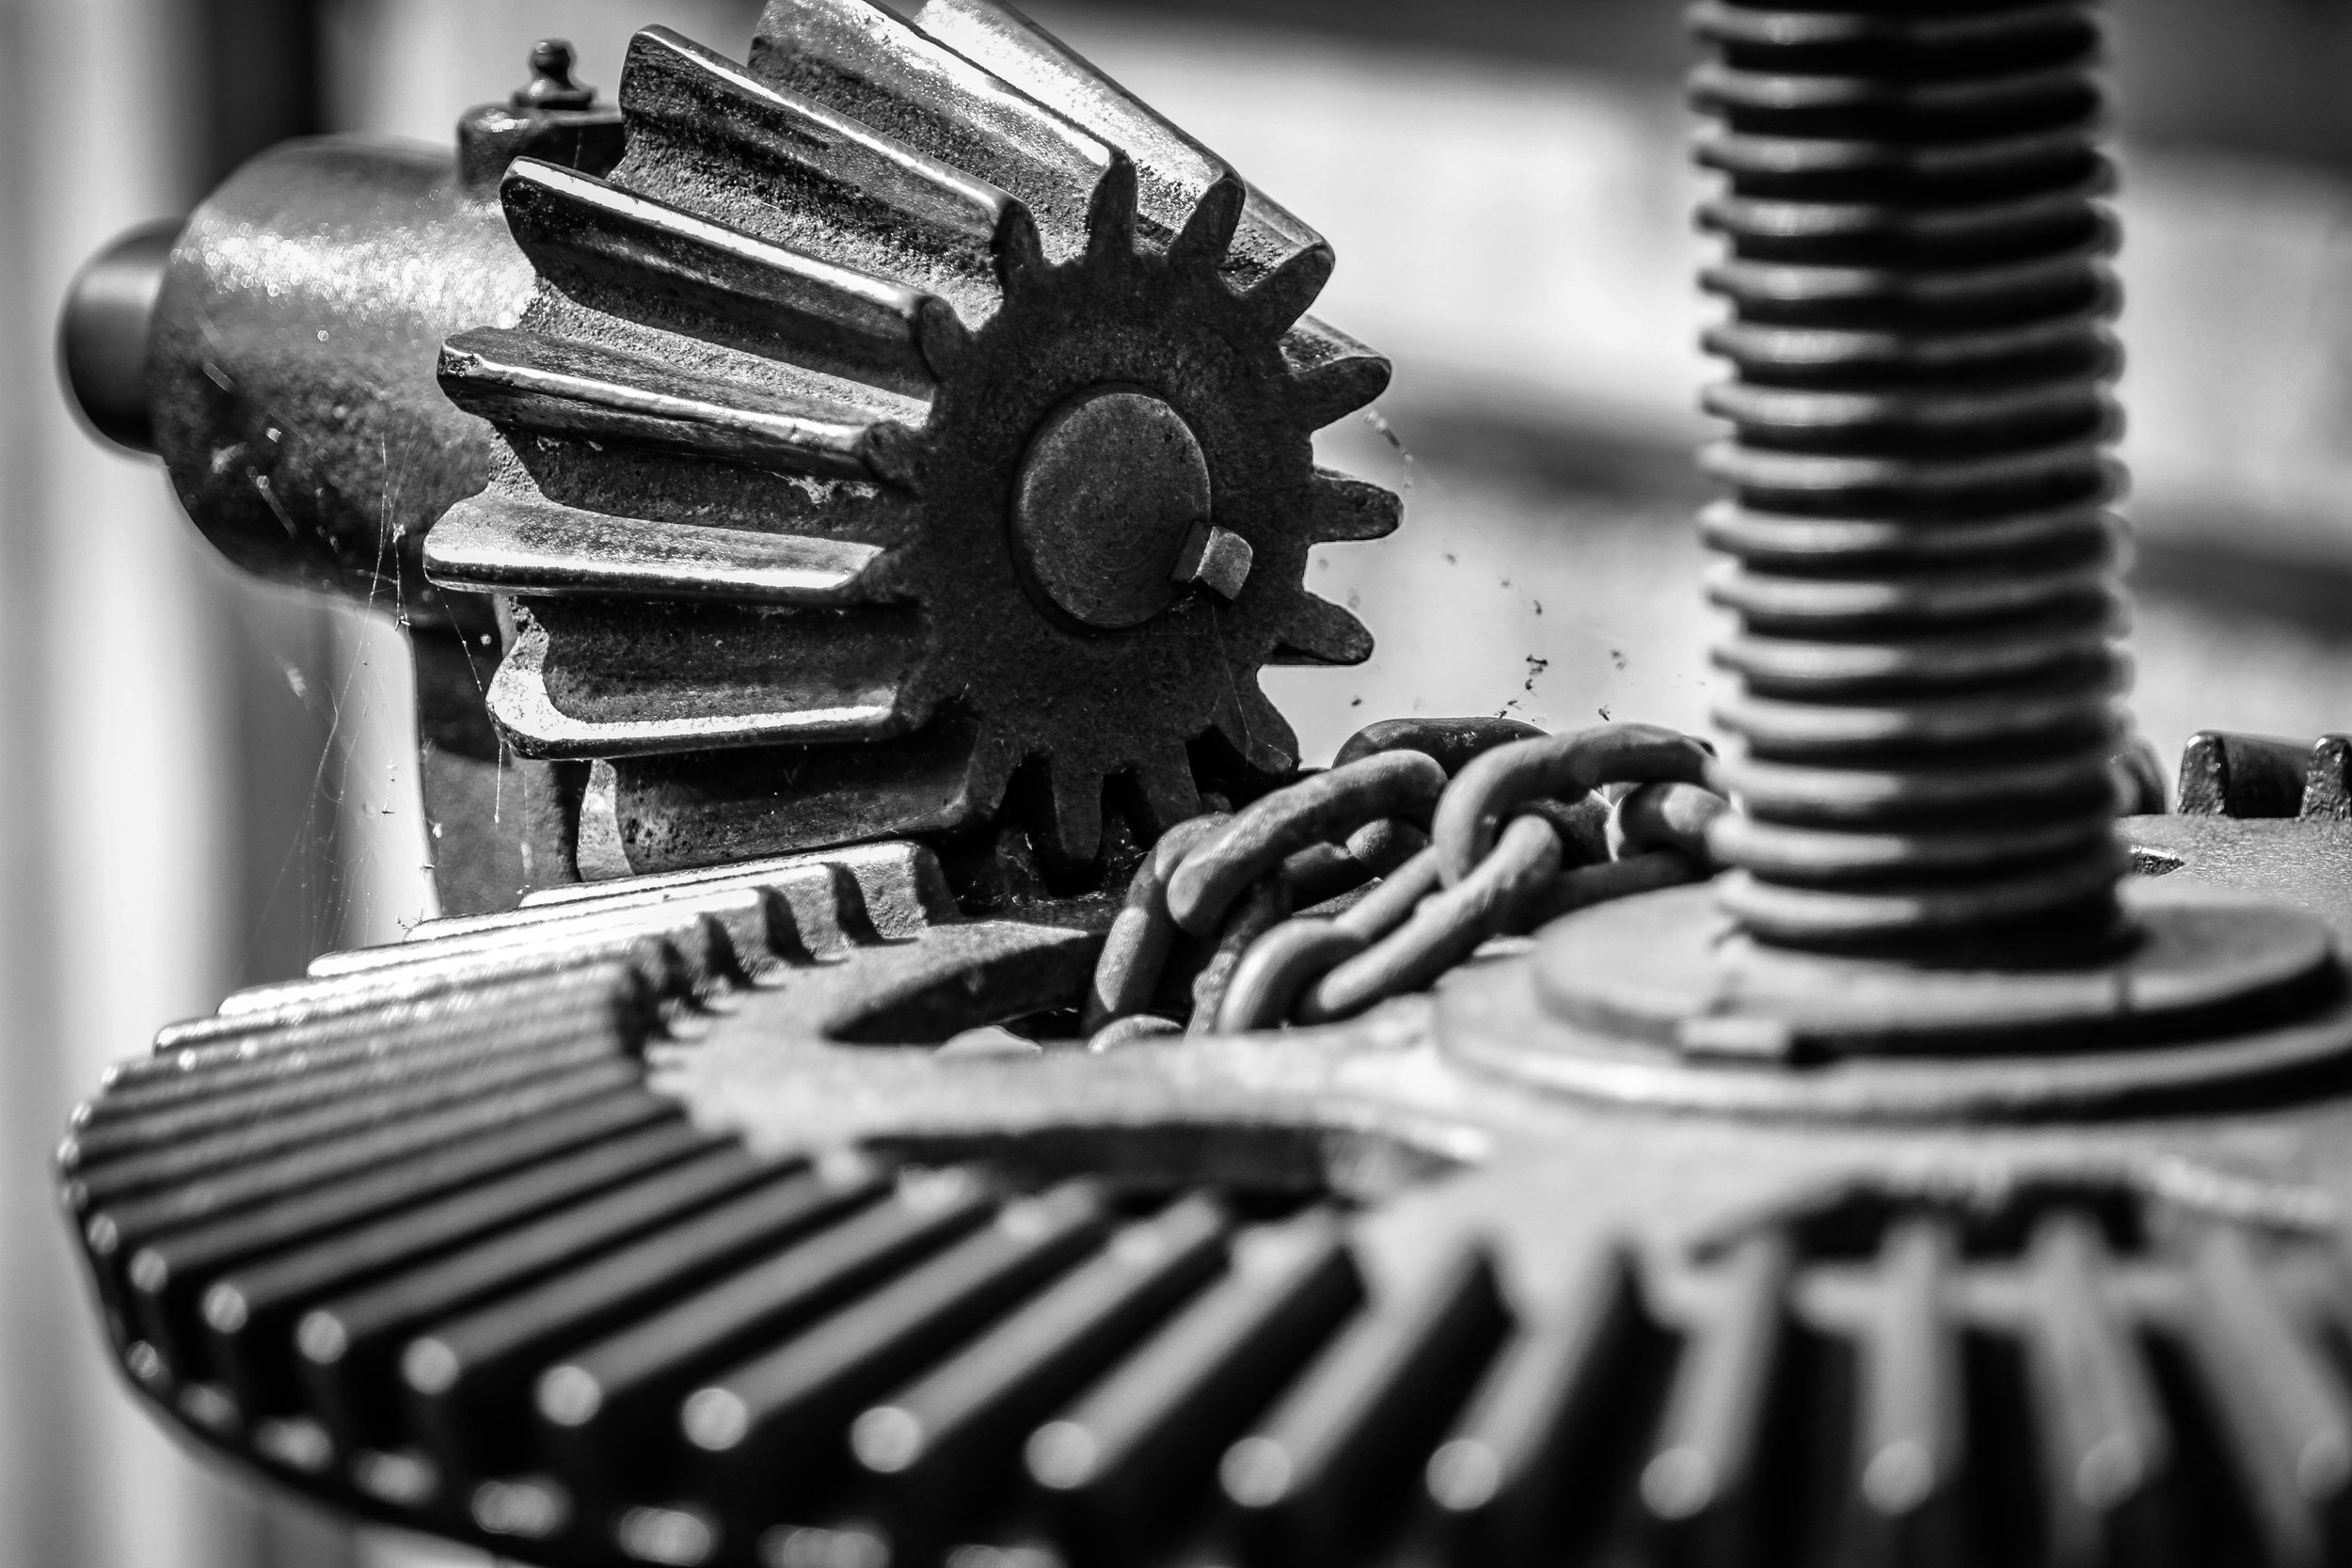 Old close up photo of gears and chain